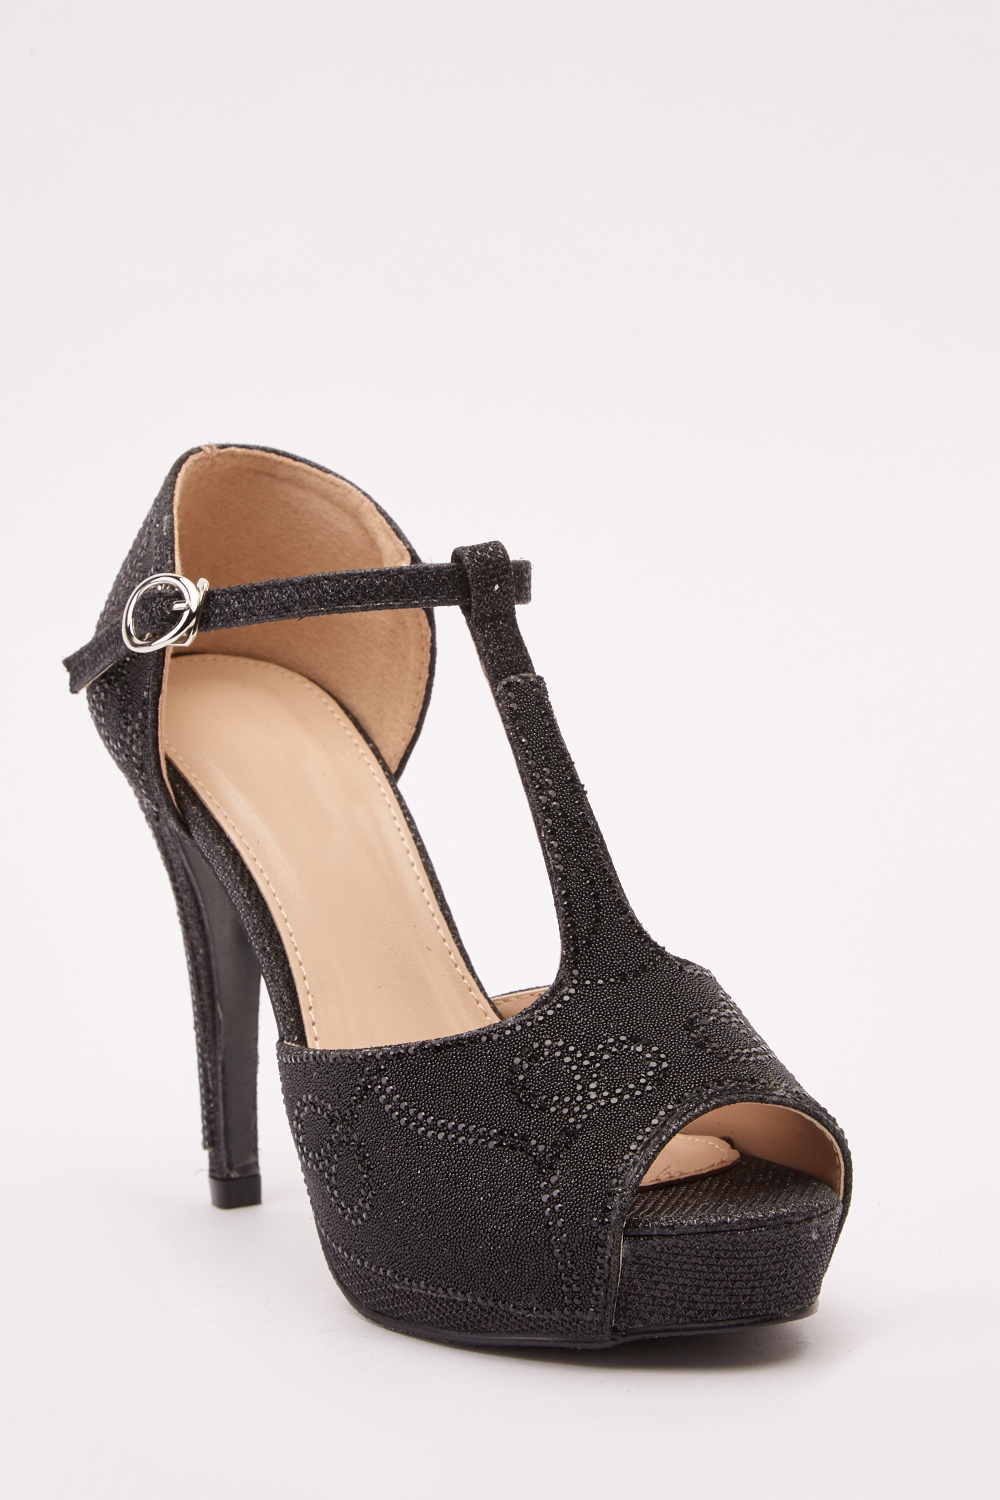 0a4f3eb3488 Encrusted Open Toe Heeled Sandals - Just £5